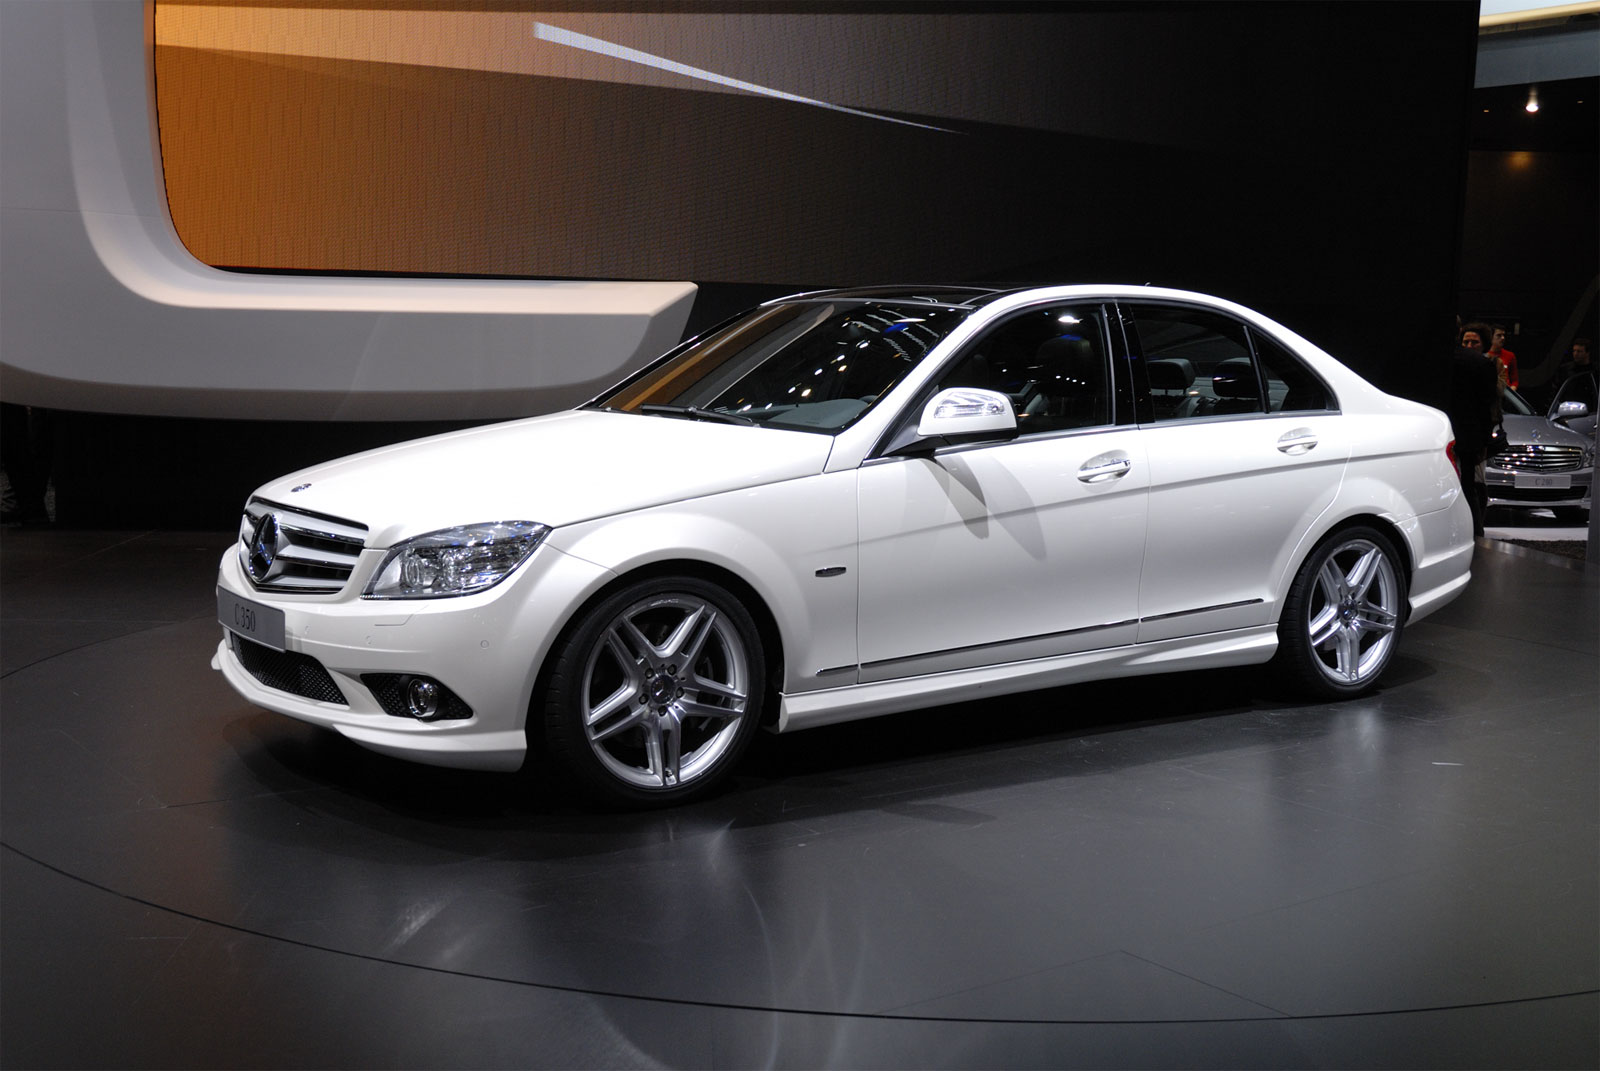 mercedes benz c 350 technical details history photos on better parts ltd. Black Bedroom Furniture Sets. Home Design Ideas